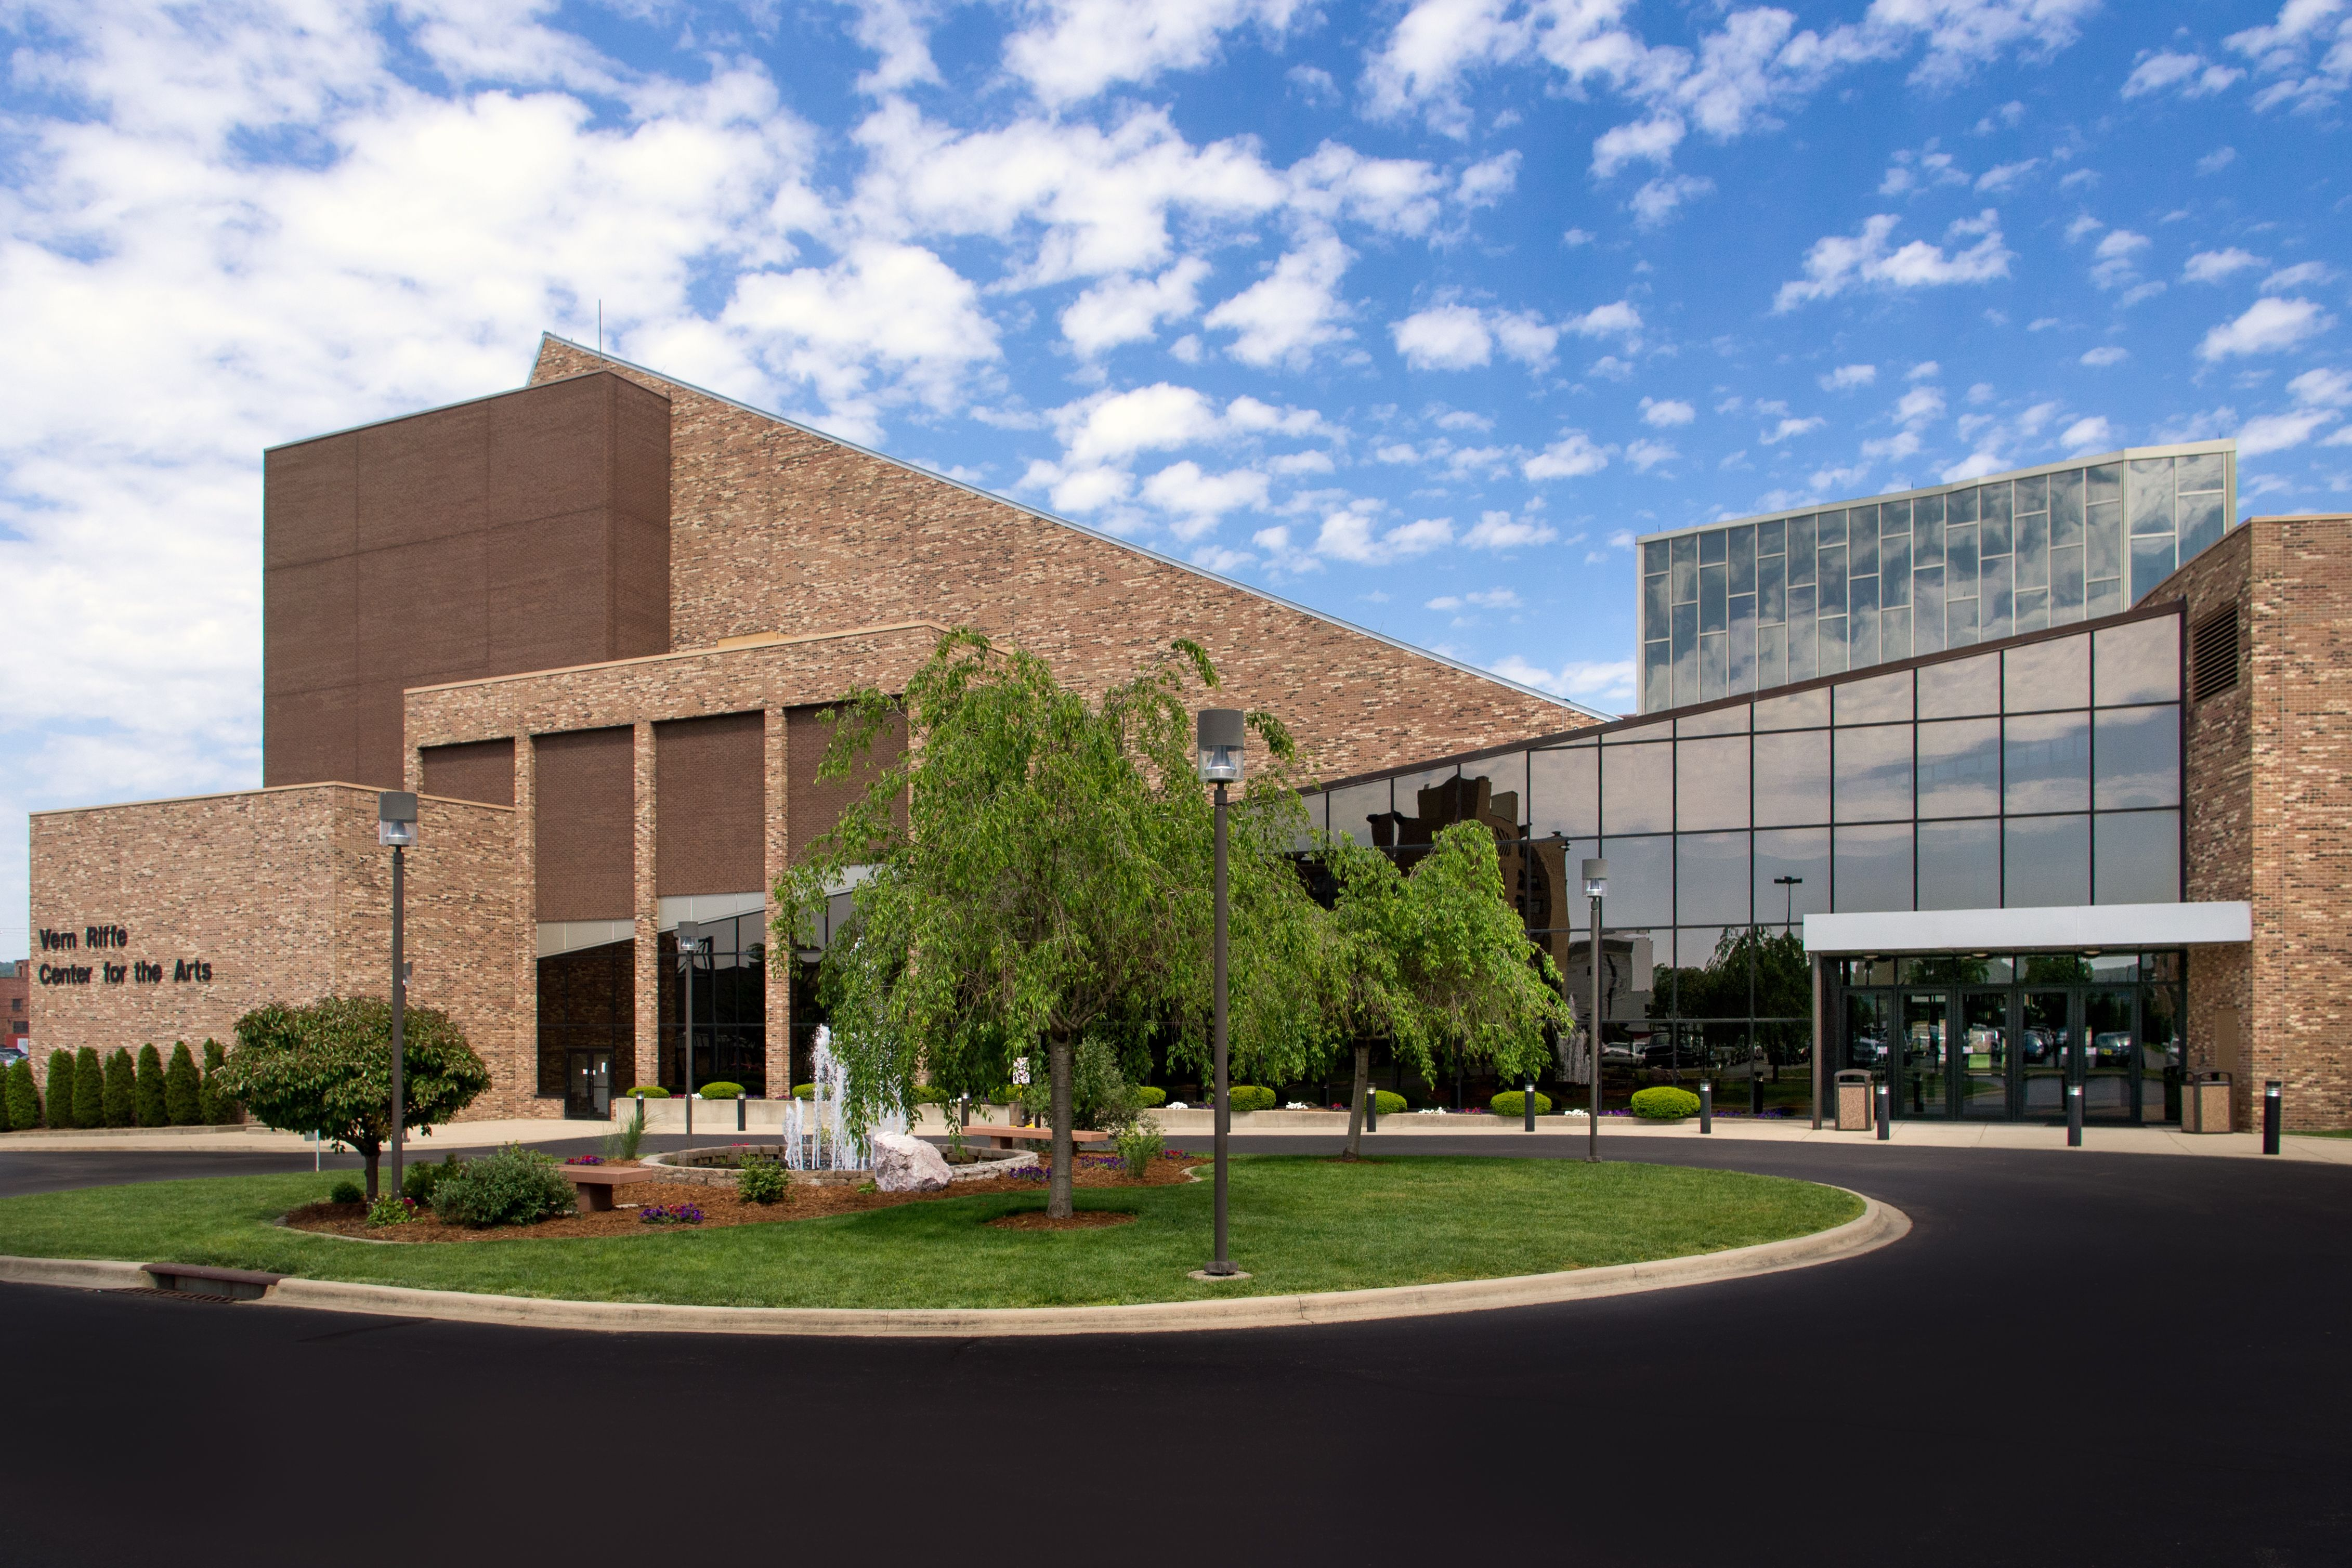 Vern Riffe Center For the Arts, photo by Jeremy Reed